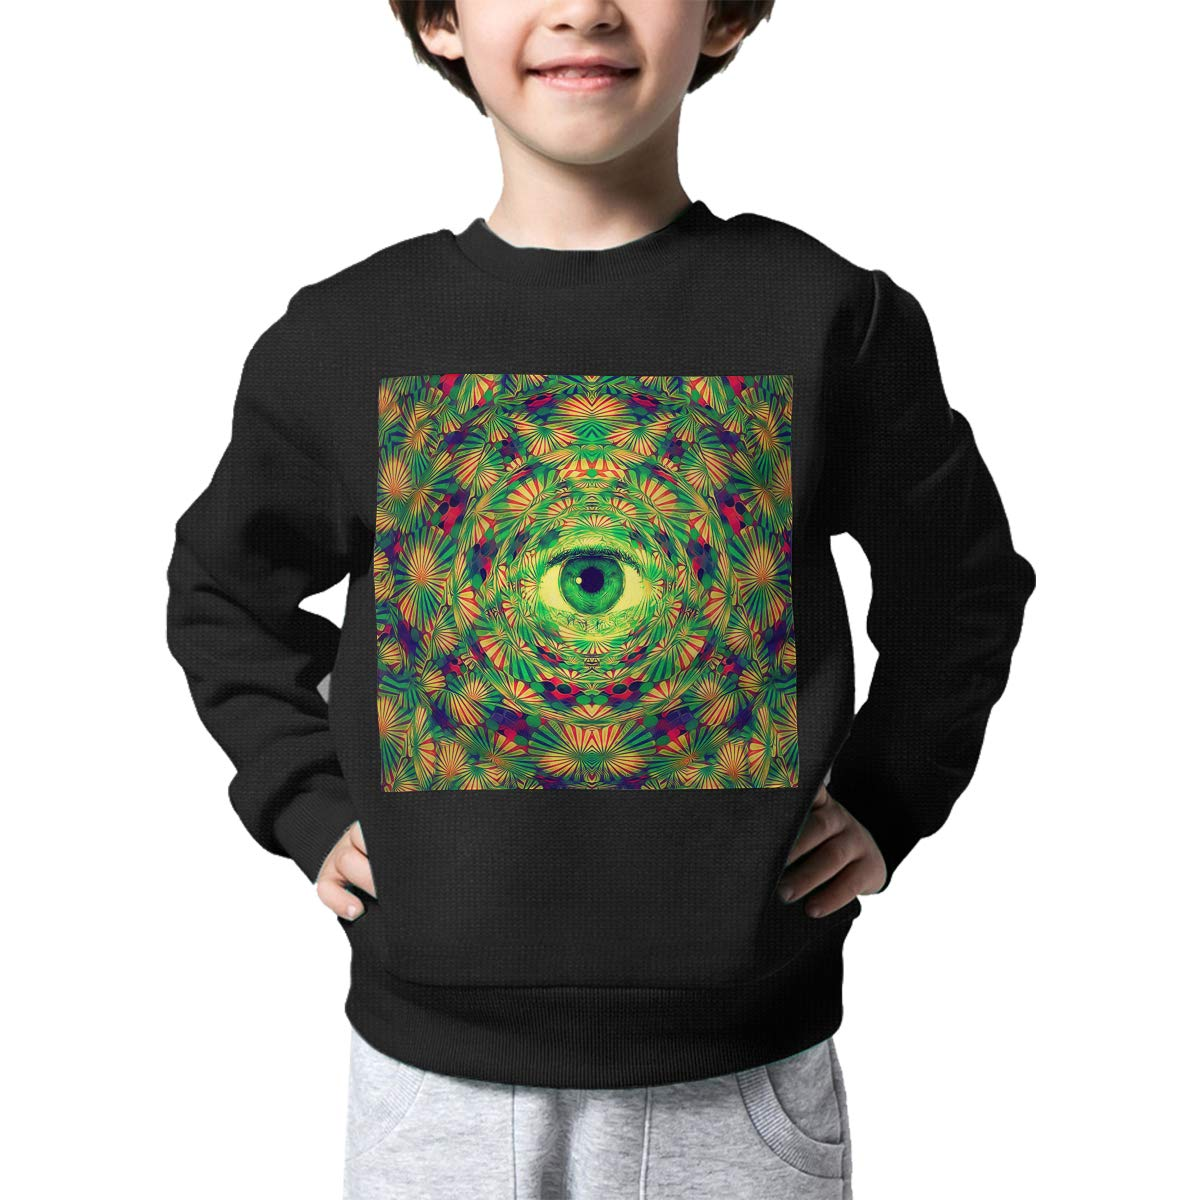 Tunnelvision Art Kids Pullover Sweater Funny Crew Neck Knitted Sweater for 2-6T